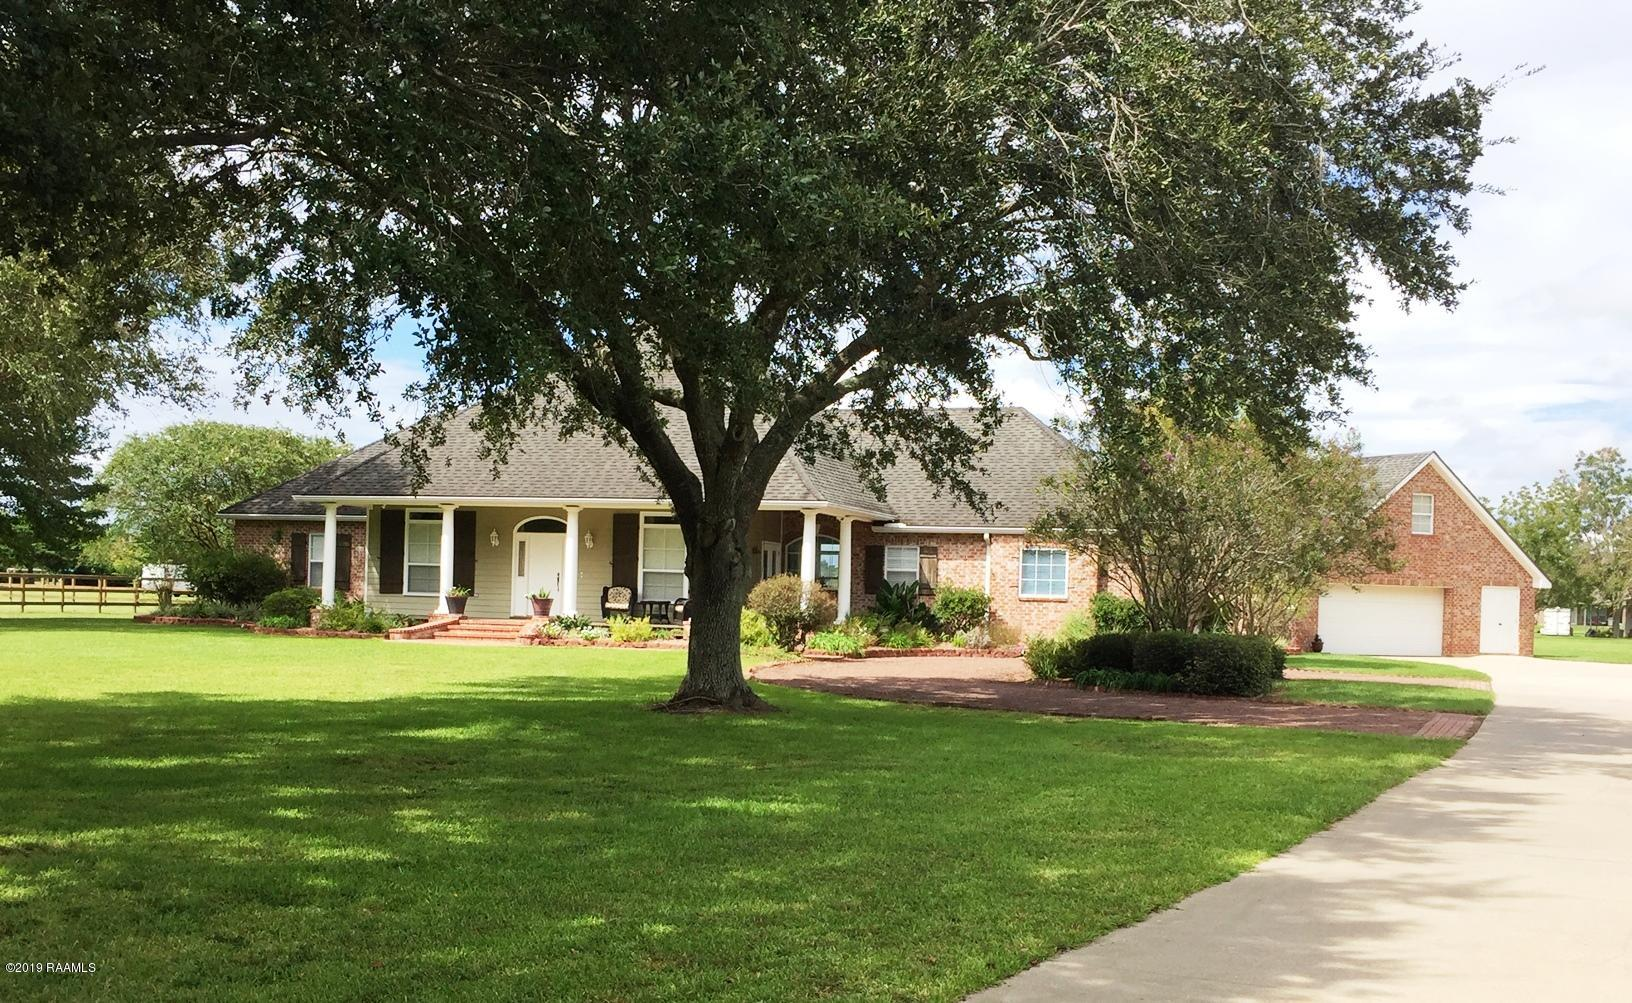 406 Copperfield Way, Youngsville, LA 70592 Photo #49